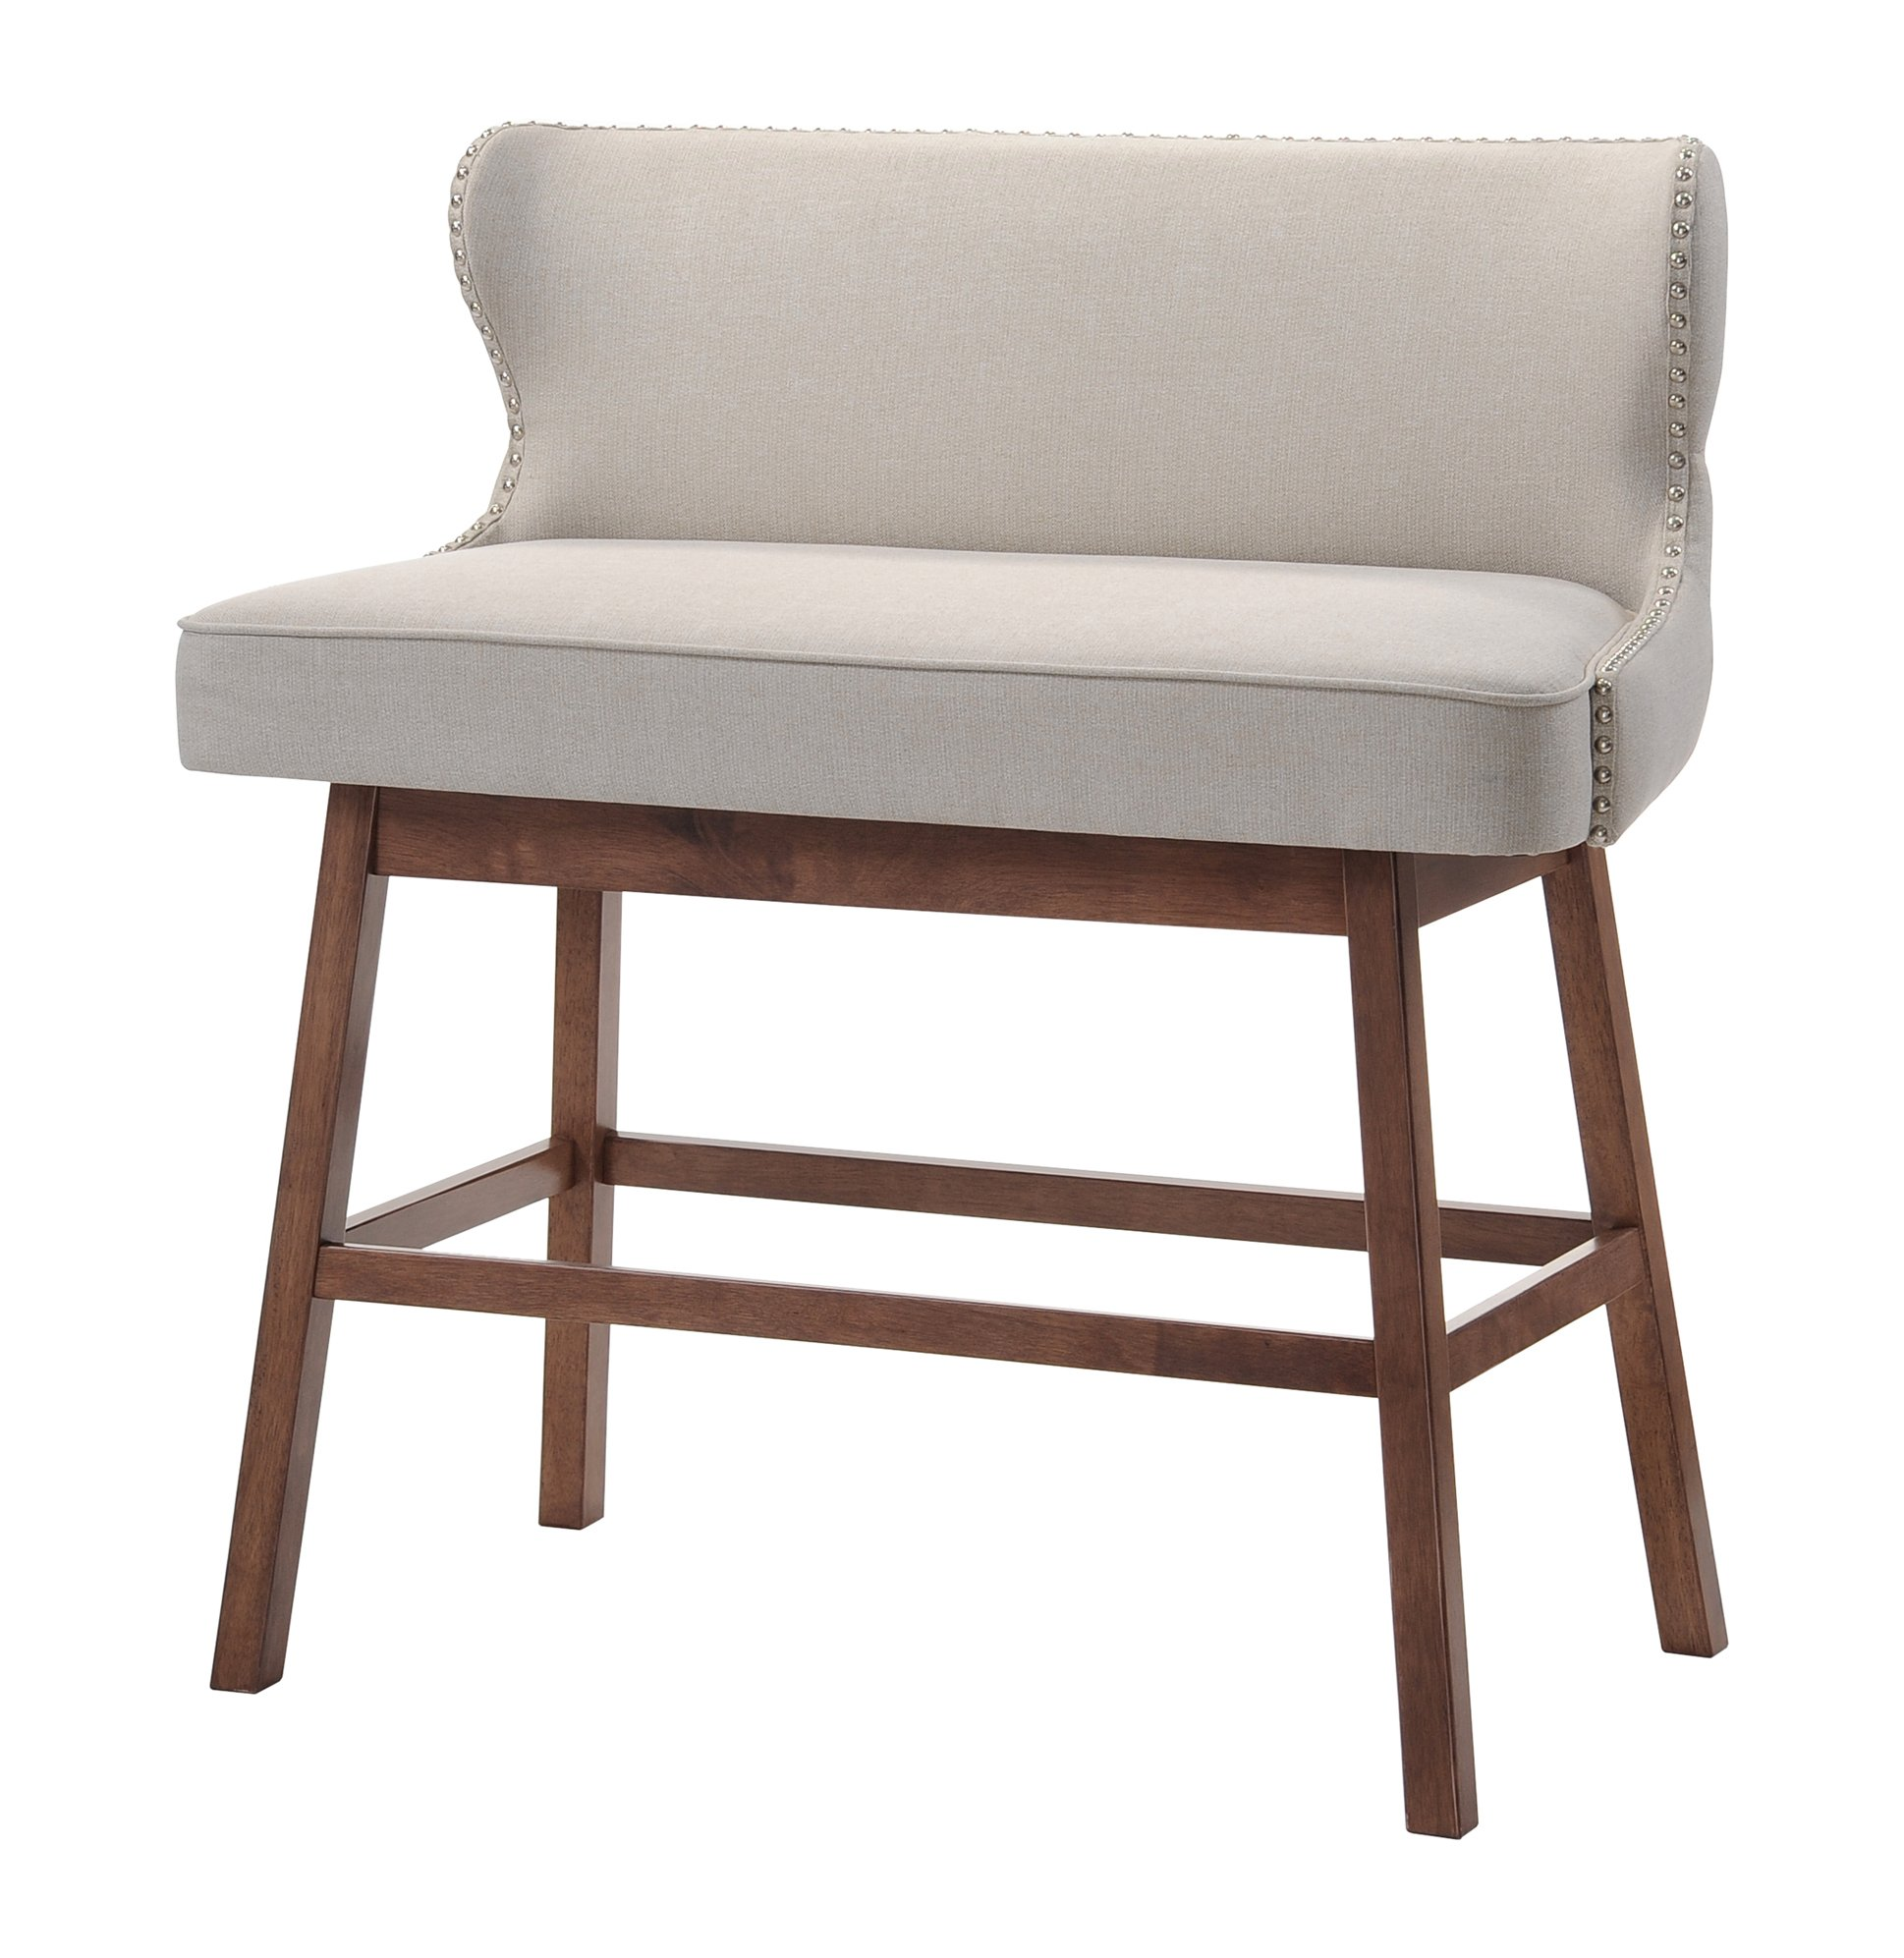 Brilliant Buy Baxton Studio Hopton Modern Bench Beige In Cheap Price Gmtry Best Dining Table And Chair Ideas Images Gmtryco